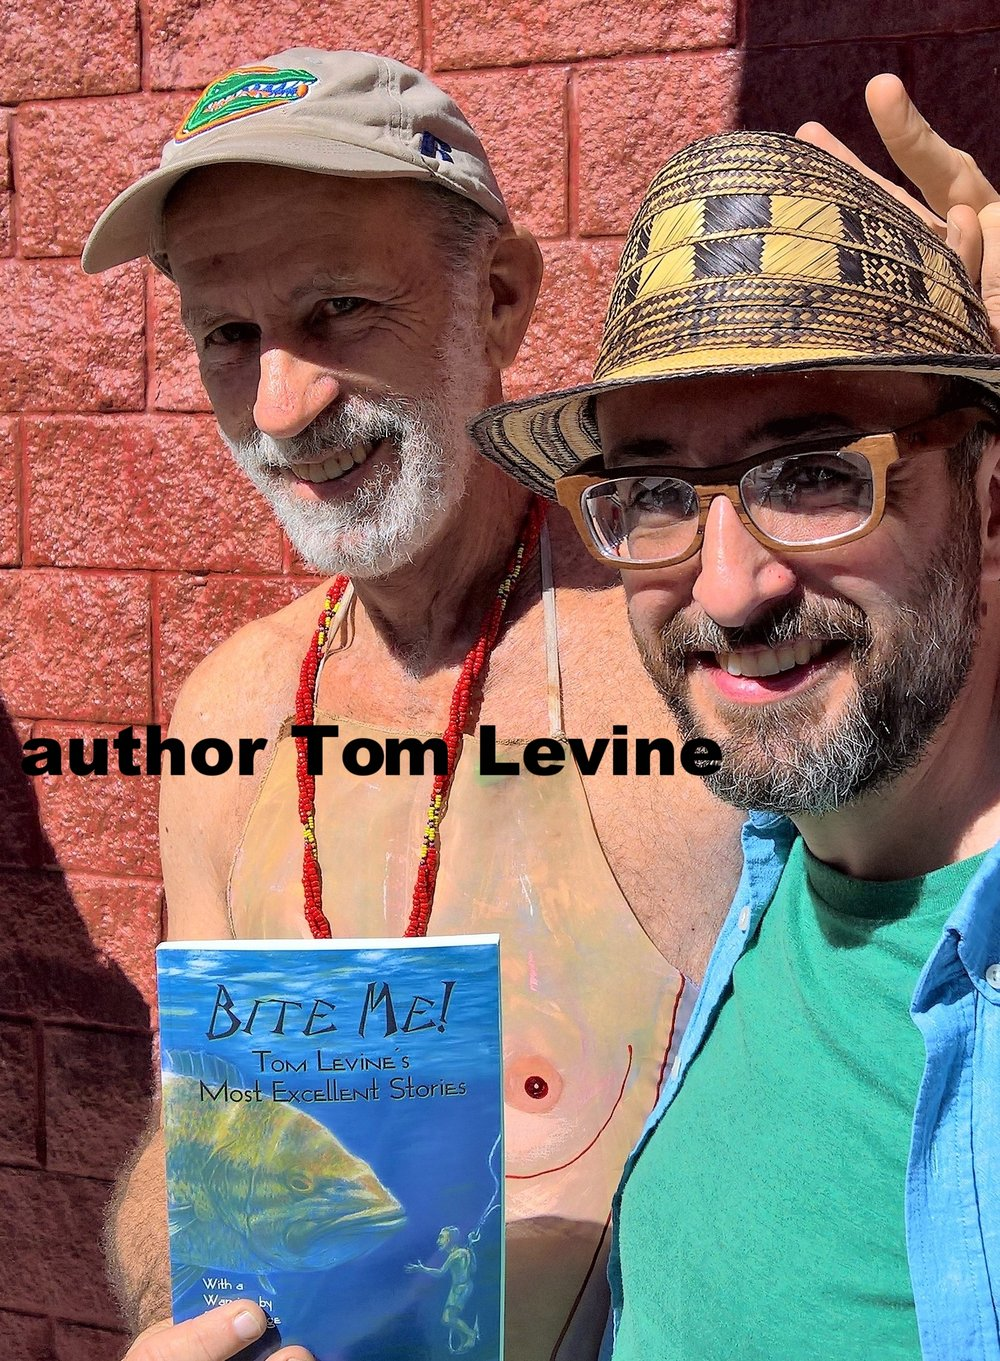 with author Tom Levine